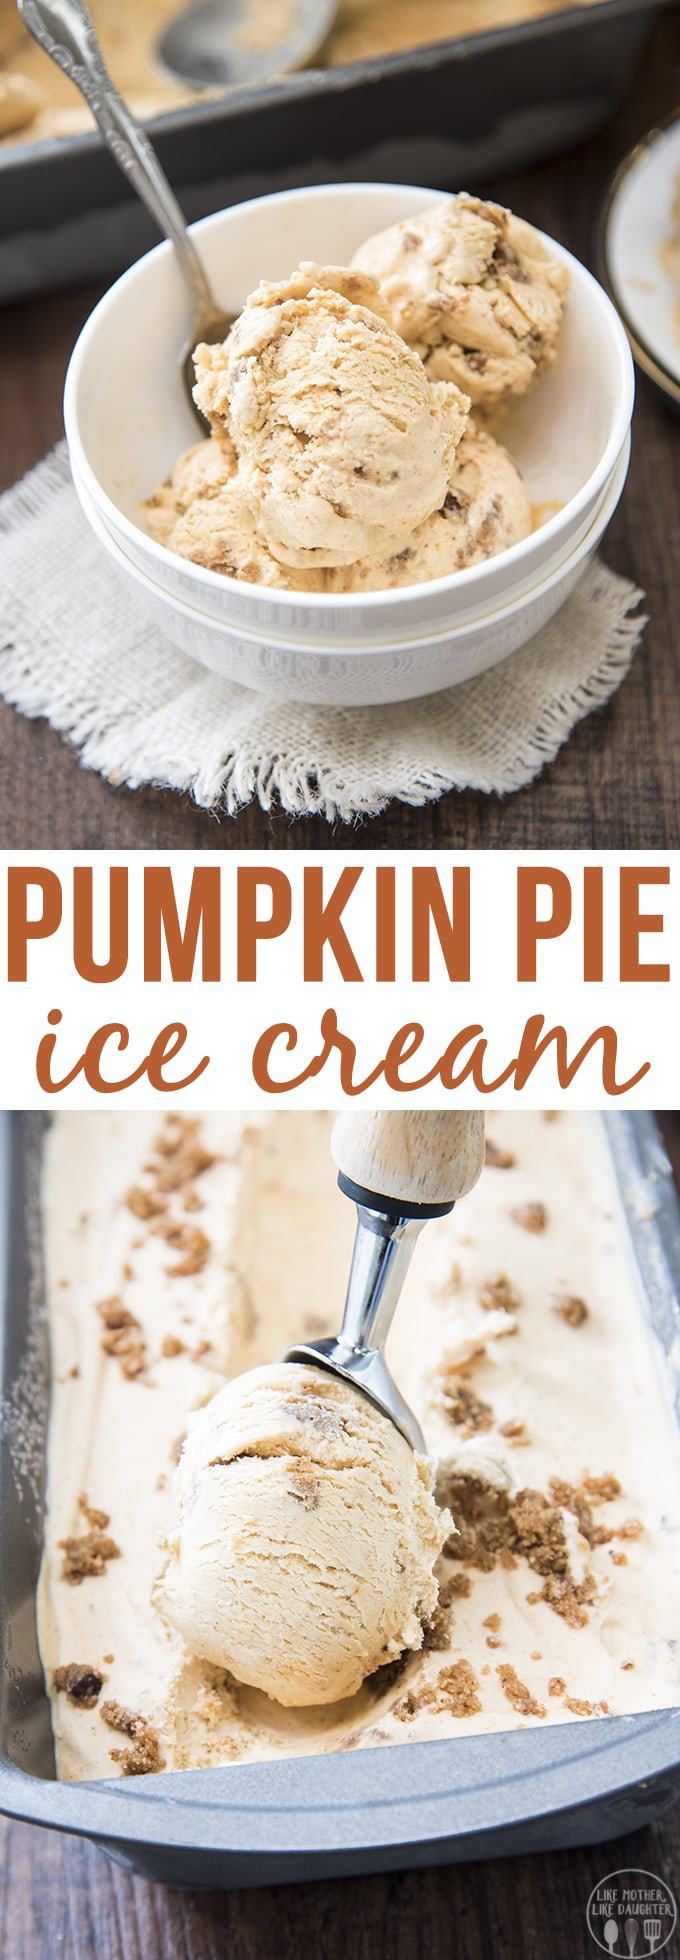 Pumpkin ice cream tastes just like a slice pumpkin pie topped with whipped cream, and there is no ice cream maker required, its creamy, perfectly spiced, and so delicious you'll want to have this ice cream for Thanksgiving and all year long.